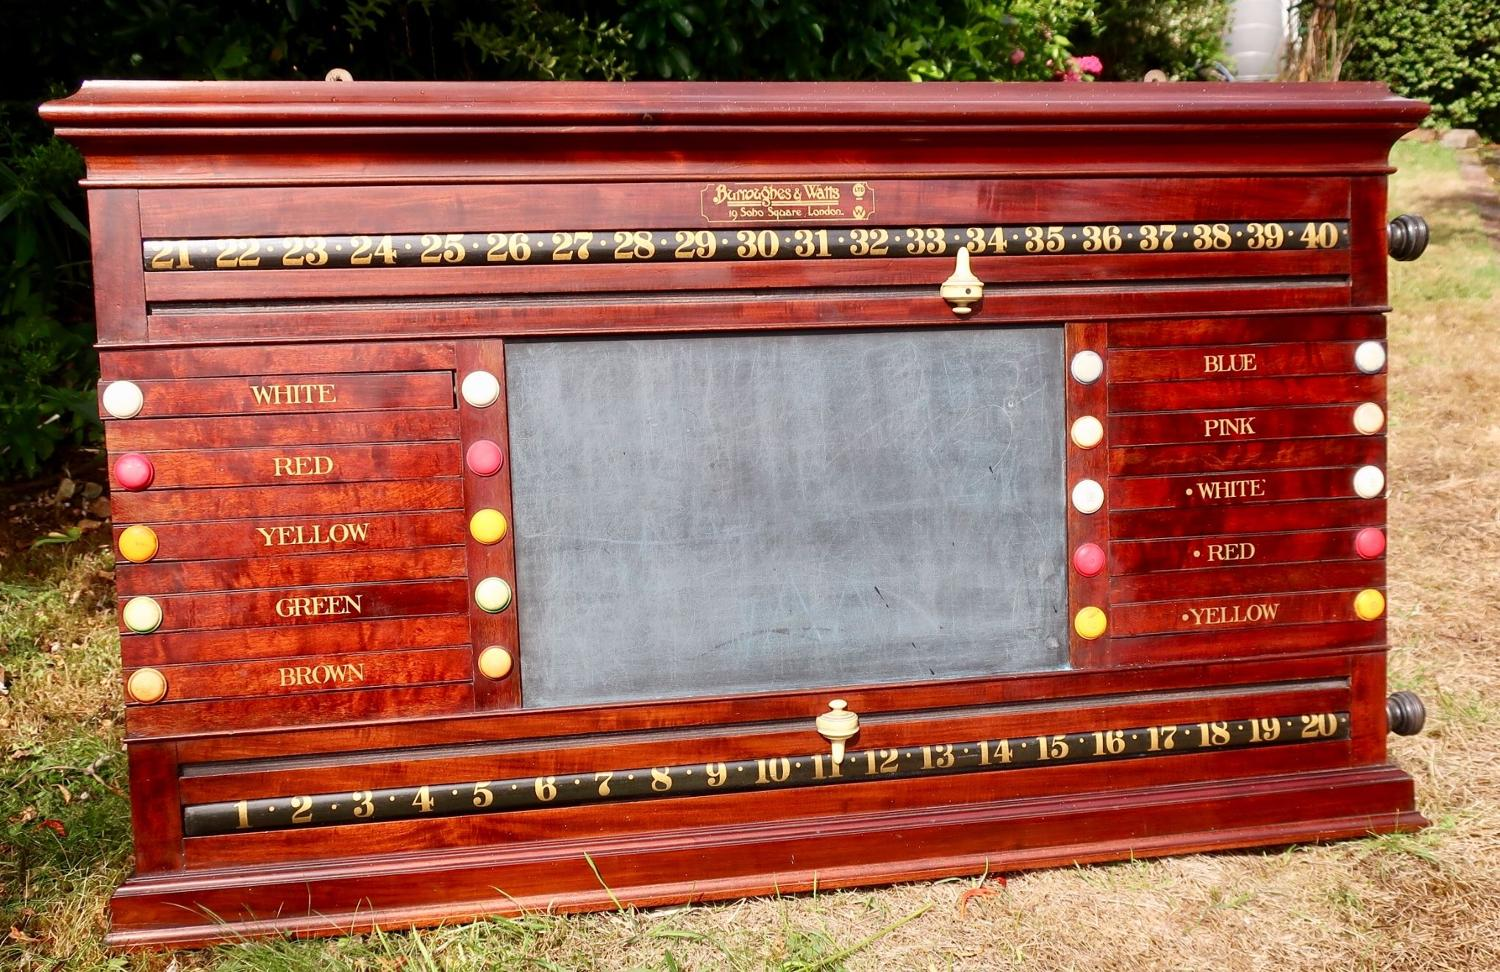 Burroughs and Watts Snooker/ Billiards scoreboard